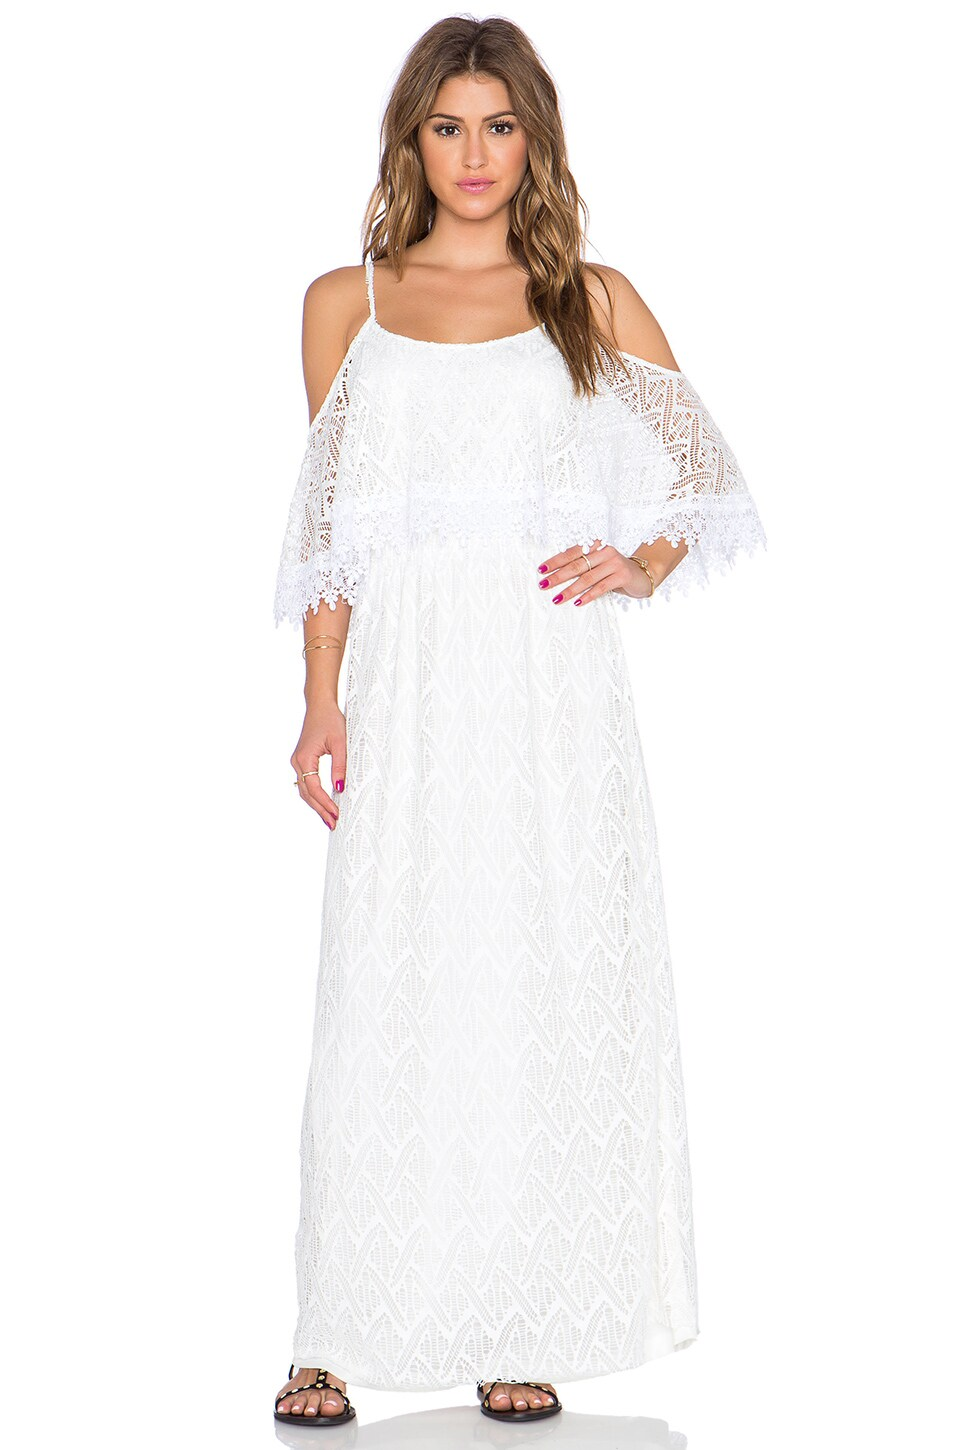 T-Bags LosAngeles Lace Maxi Dress in Pearl